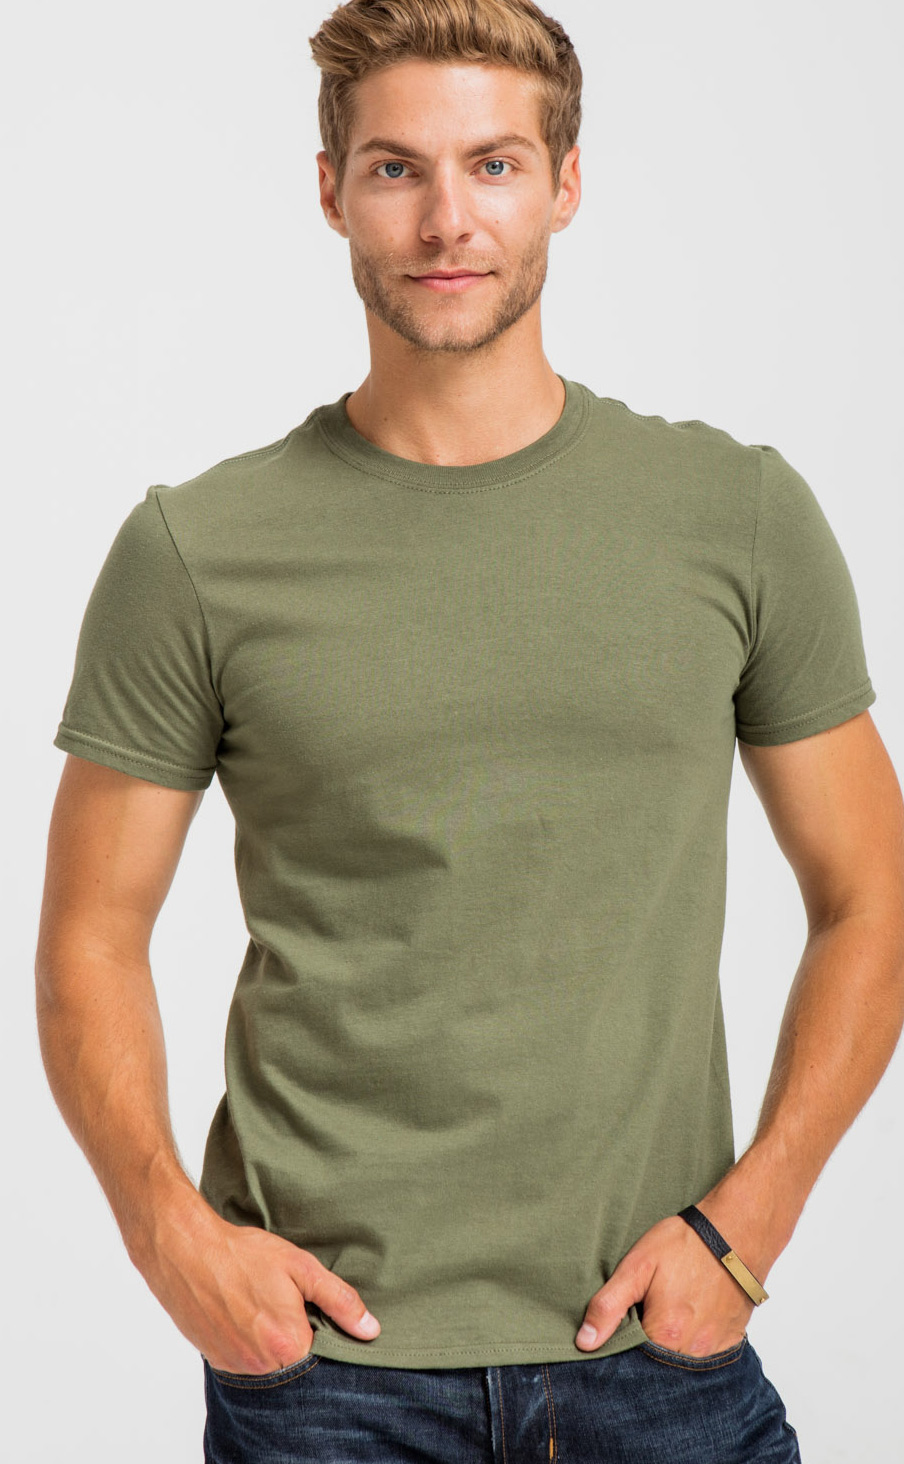 The best, Gildan SoftStyle Tee—64000, in Military Green.